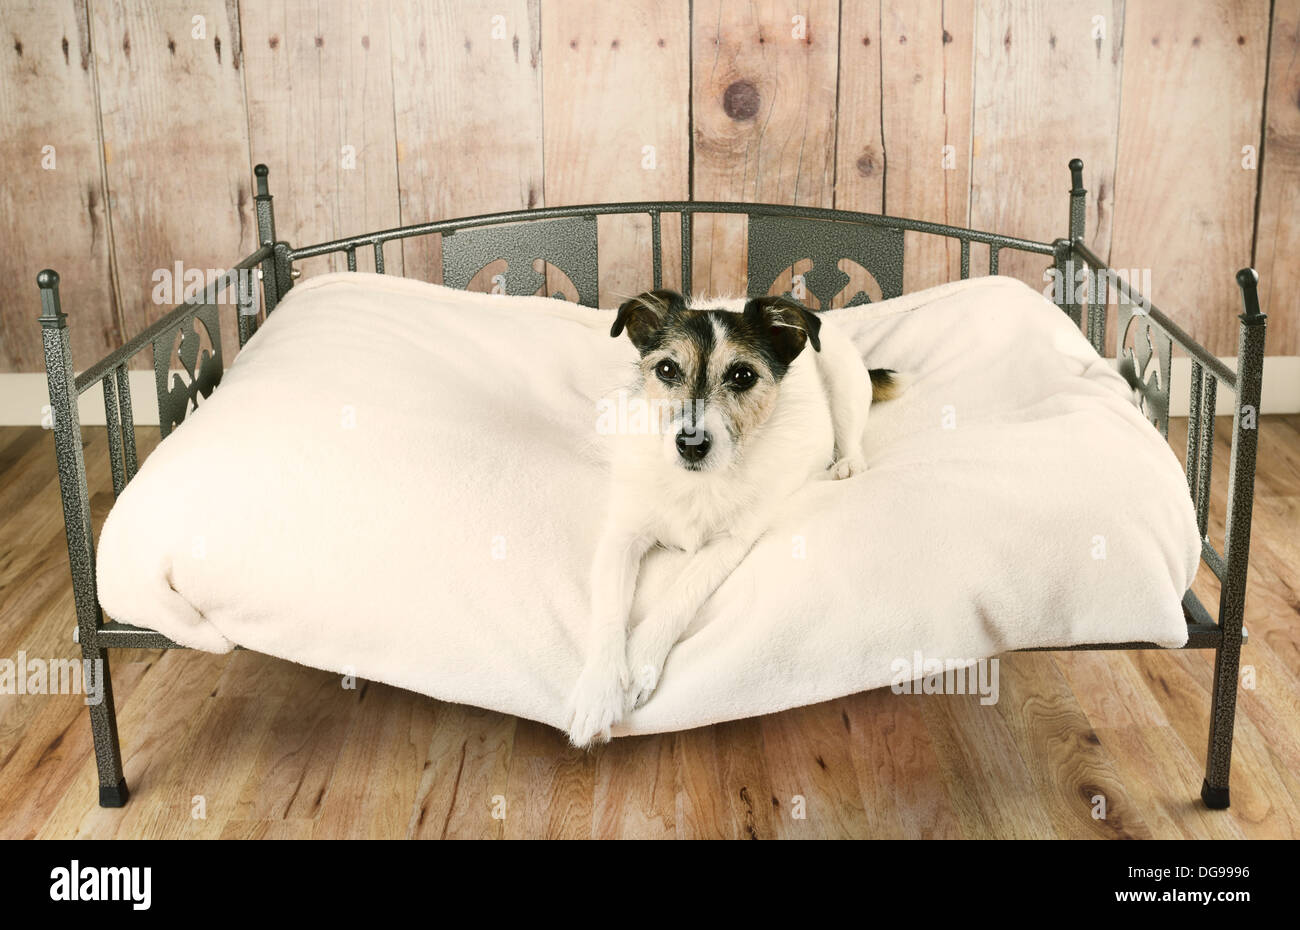 Jack Russell terrier dog relaxing in luxury dog bed - Stock Image